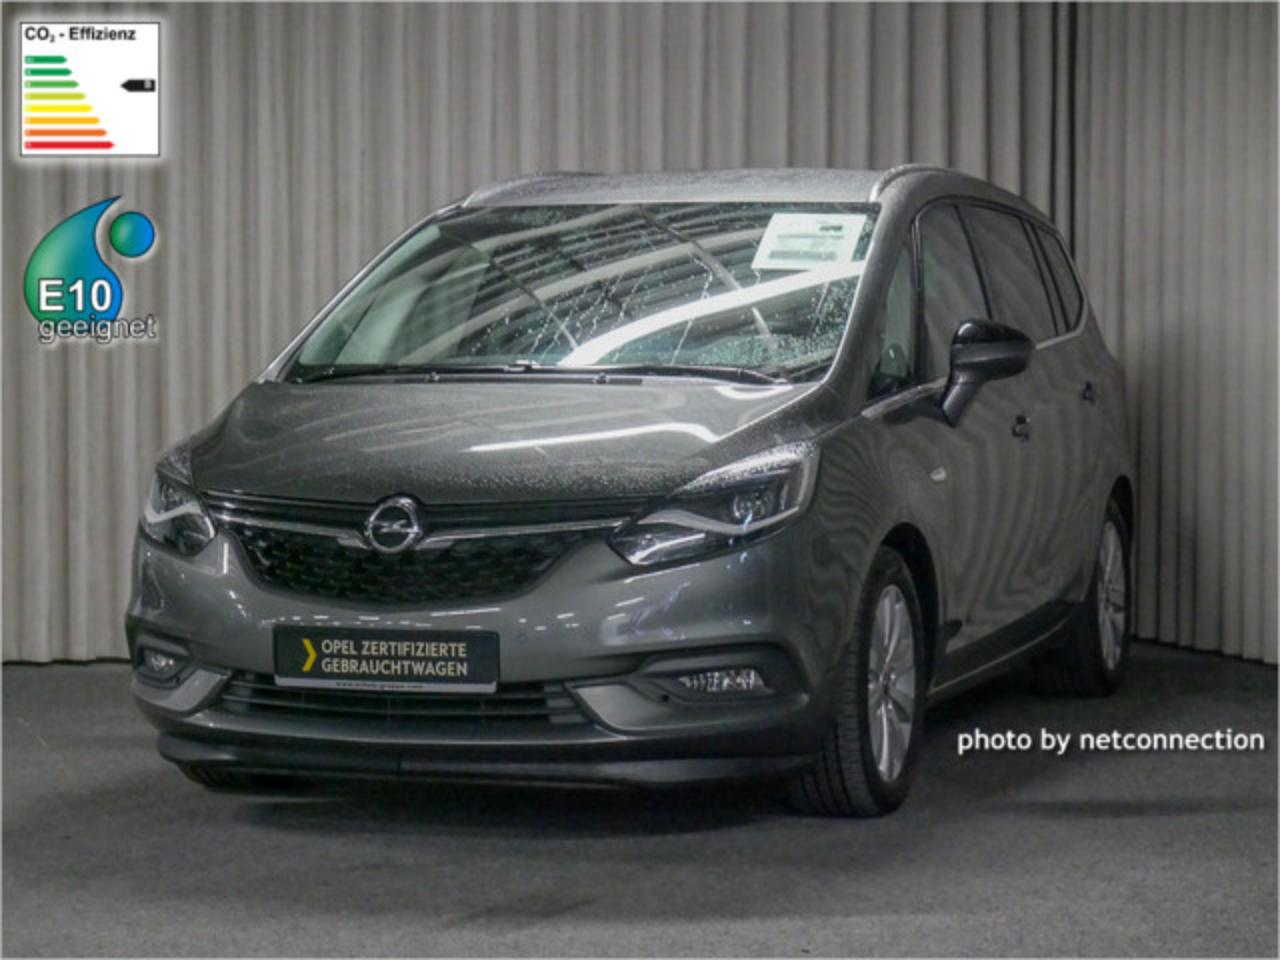 Opel Zafira C 1.4 Innovation Start/Stop NAVI LED EU6